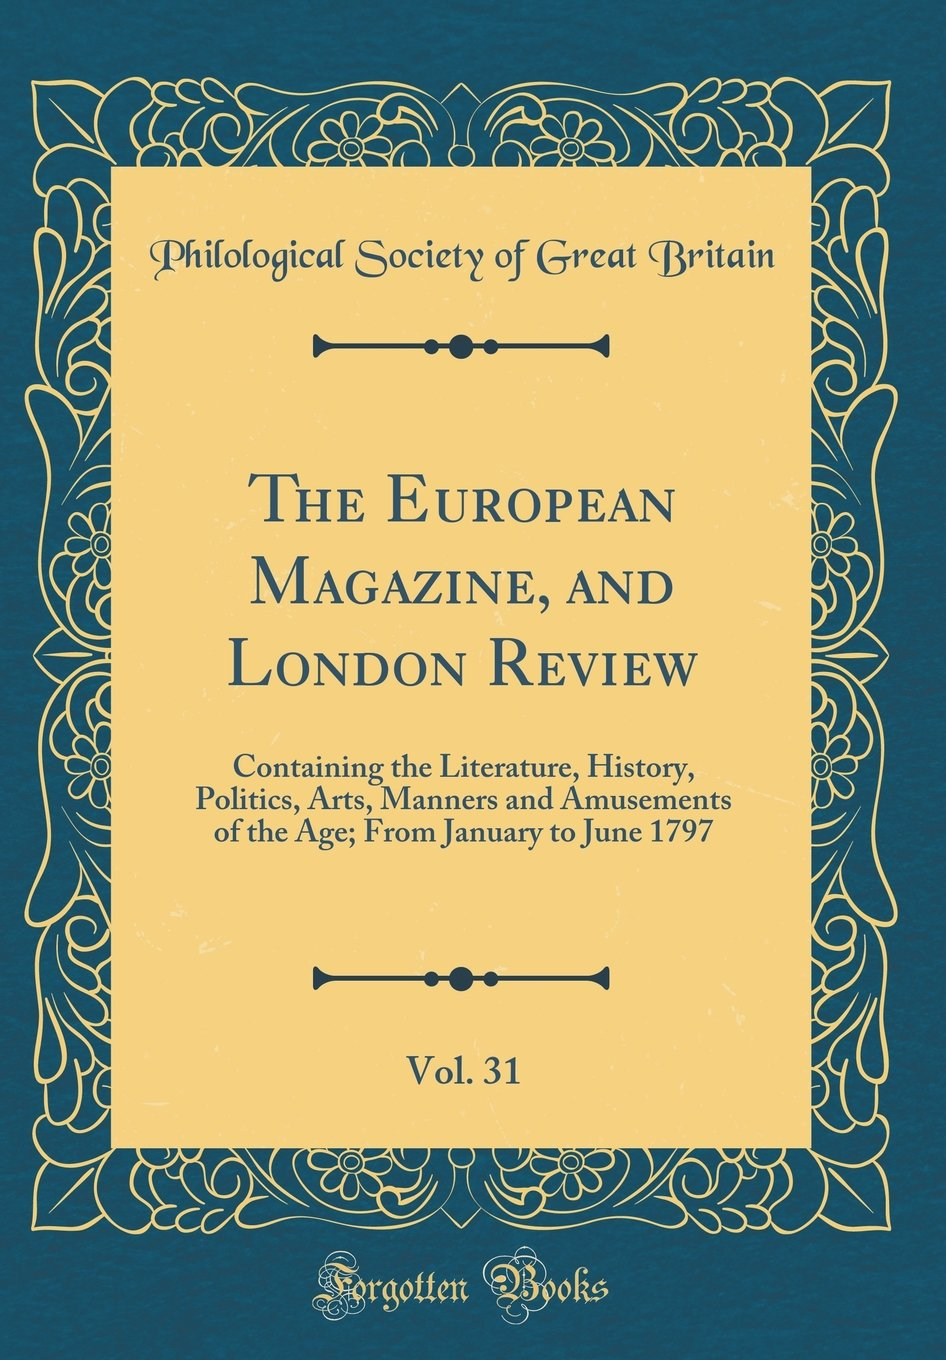 Read Online The European Magazine, and London Review, Vol. 31: Containing the Literature, History, Politics, Arts, Manners and Amusements of the Age; From January to June 1797 (Classic Reprint) PDF